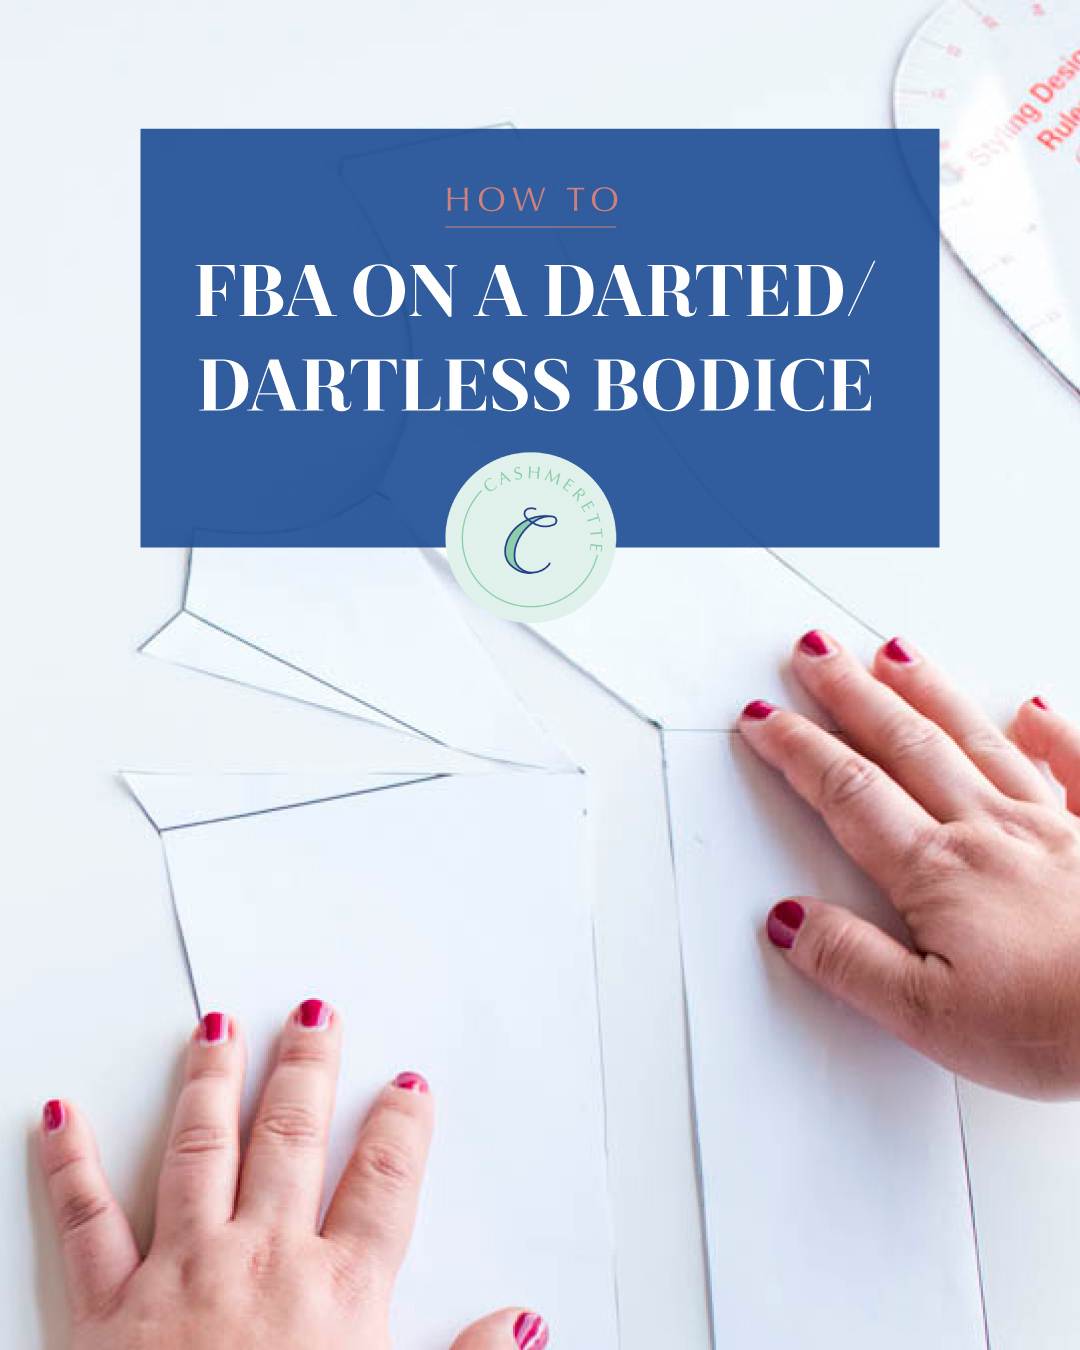 how to do an FBA on a darted/dartless bodice